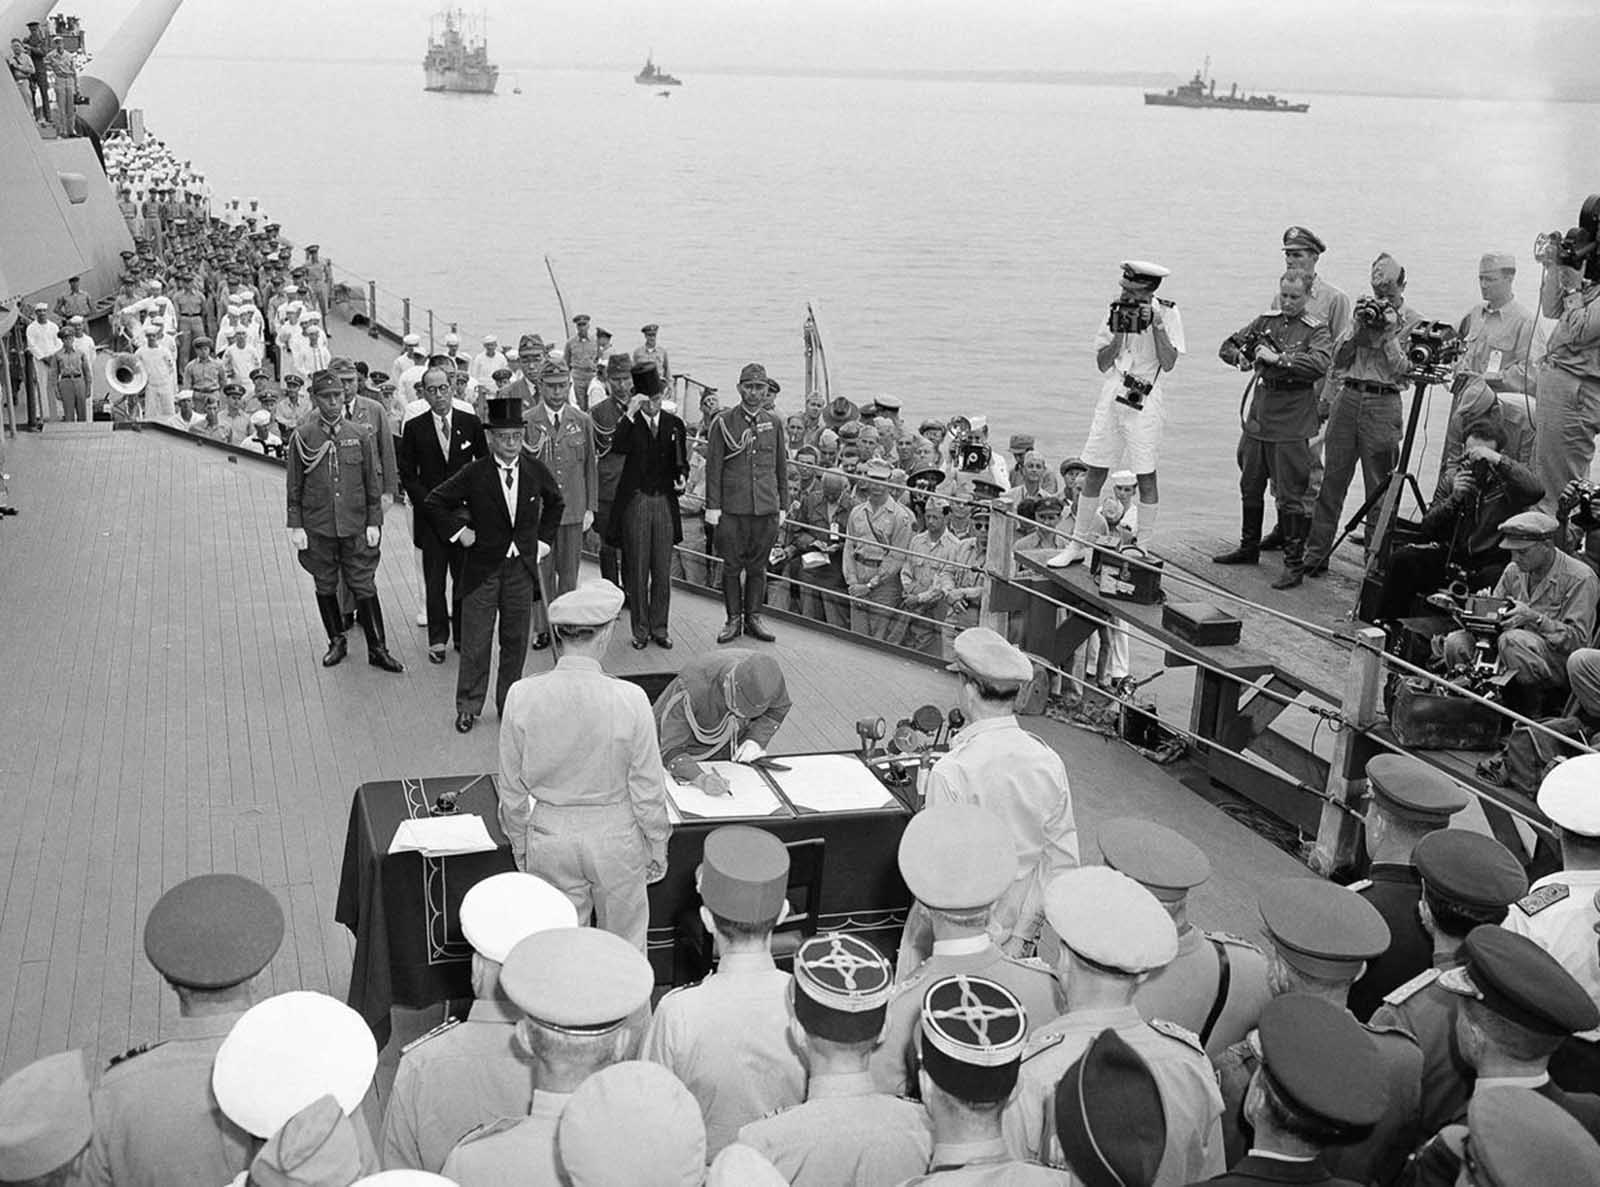 The scene aboard the battleship Missouri as the Japanese surrender documents were signed in Tokyo Bay, on September 2, 1945. Here, General Yoshijiro Umezu signs the Instrument of Surrender on behalf of the Armed Forces of Japan, Foreign Minister Mamoru Shigemitsu (behind him, in top hat) had earlier signed on behalf of the government. Both men were later tried and convicted of war crimes. Umezu died while in prison, Shigemitsu was paroled in 1950, and served in the Japanese government until his death in 1957.